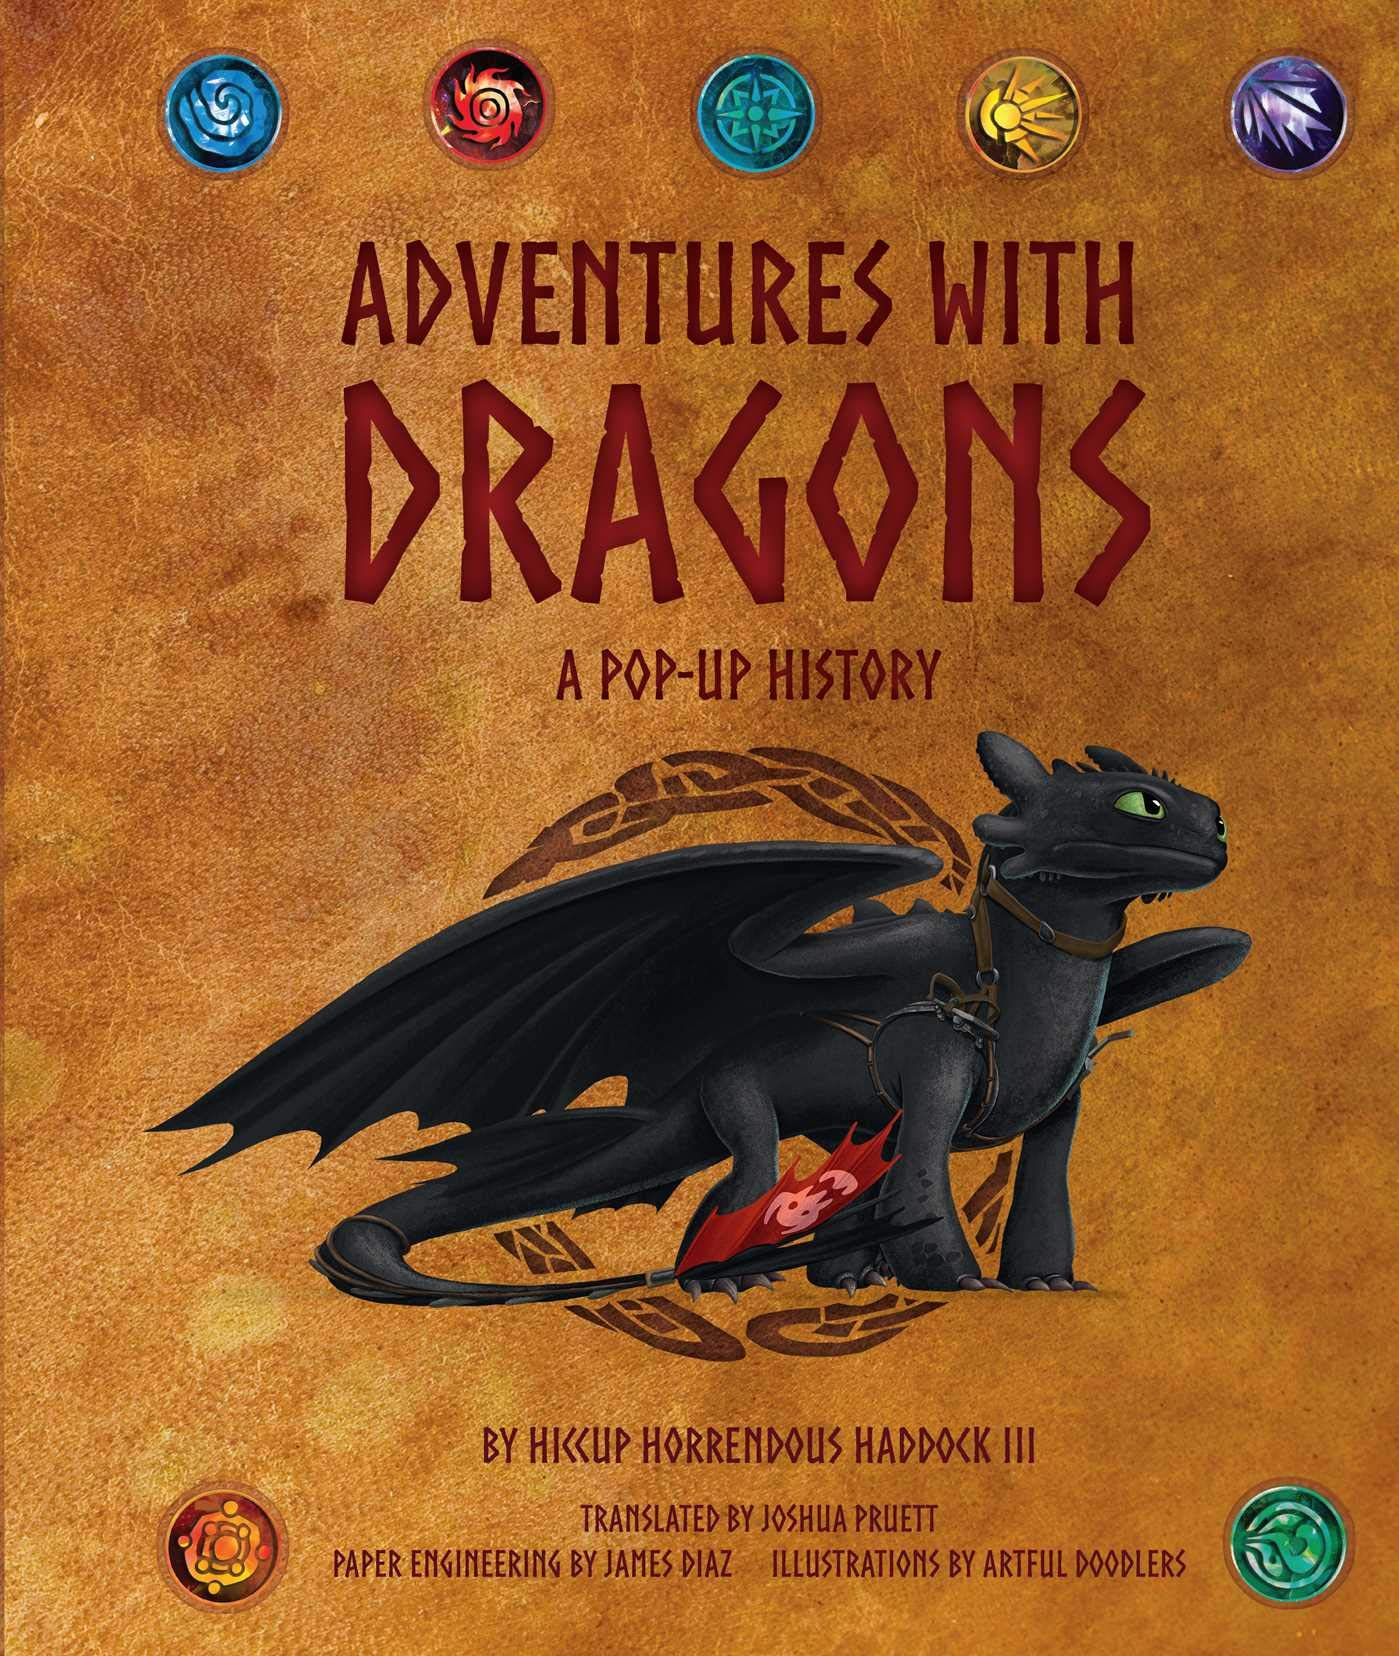 Adventures with Dragons